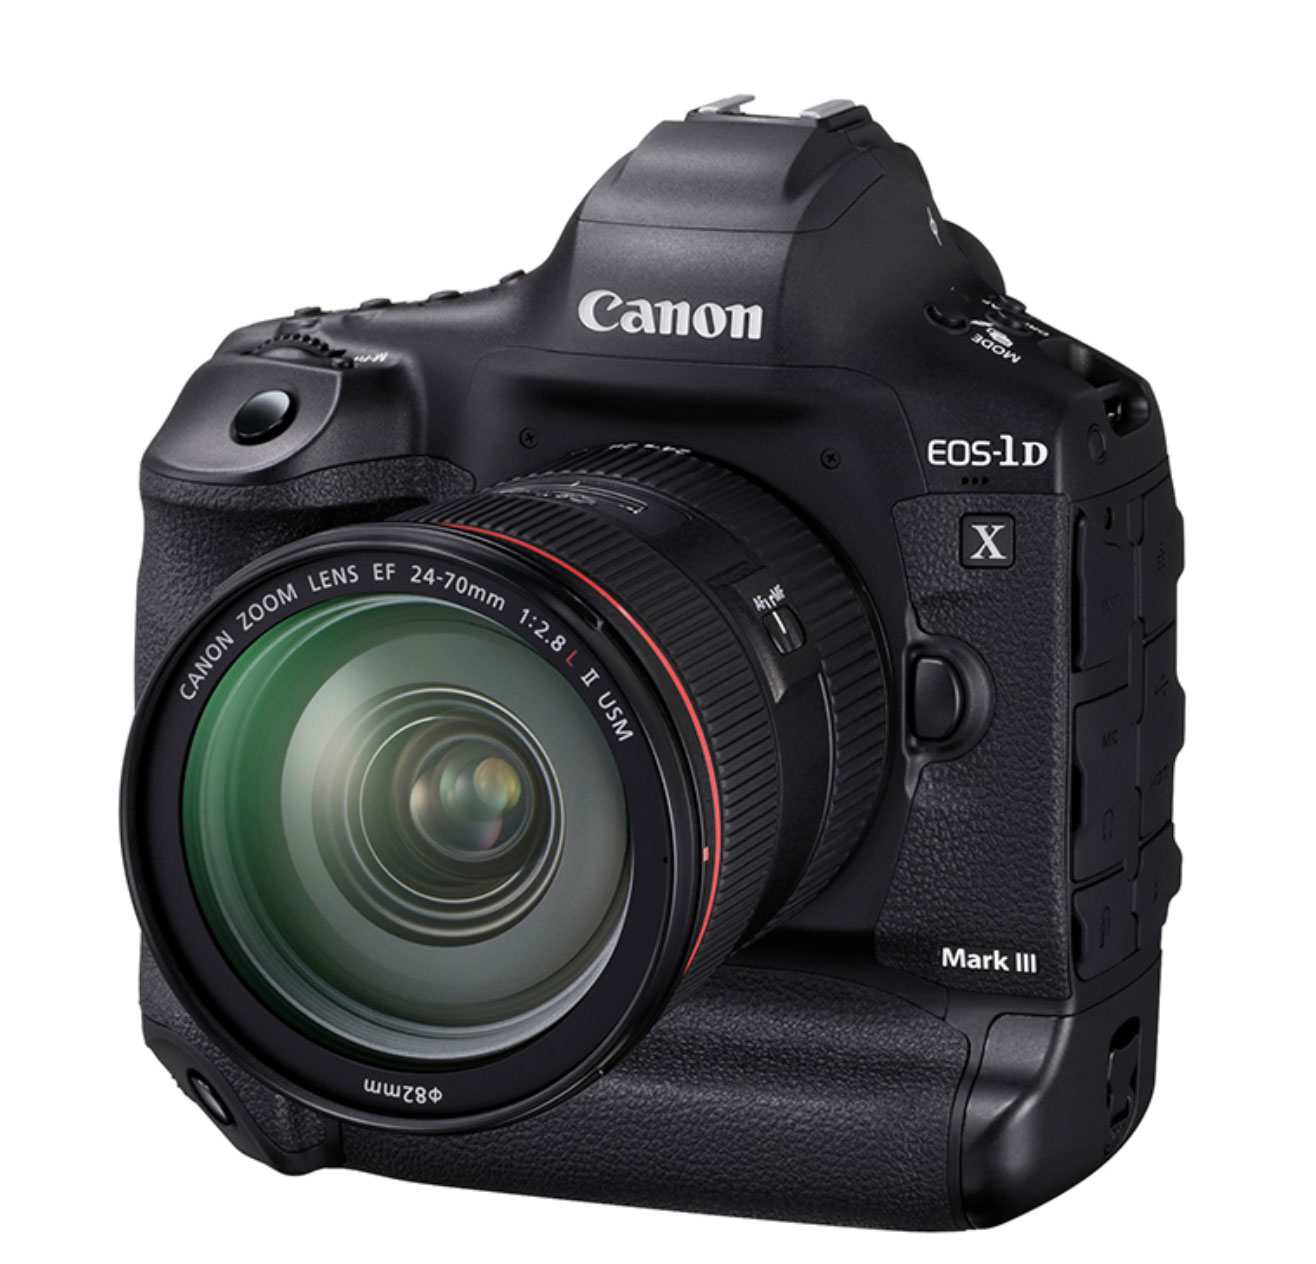 Canon: EOS-1D X Mark III - first DSLR with internal RAW video recording. Also 4K 10 Bit 60p Log on b